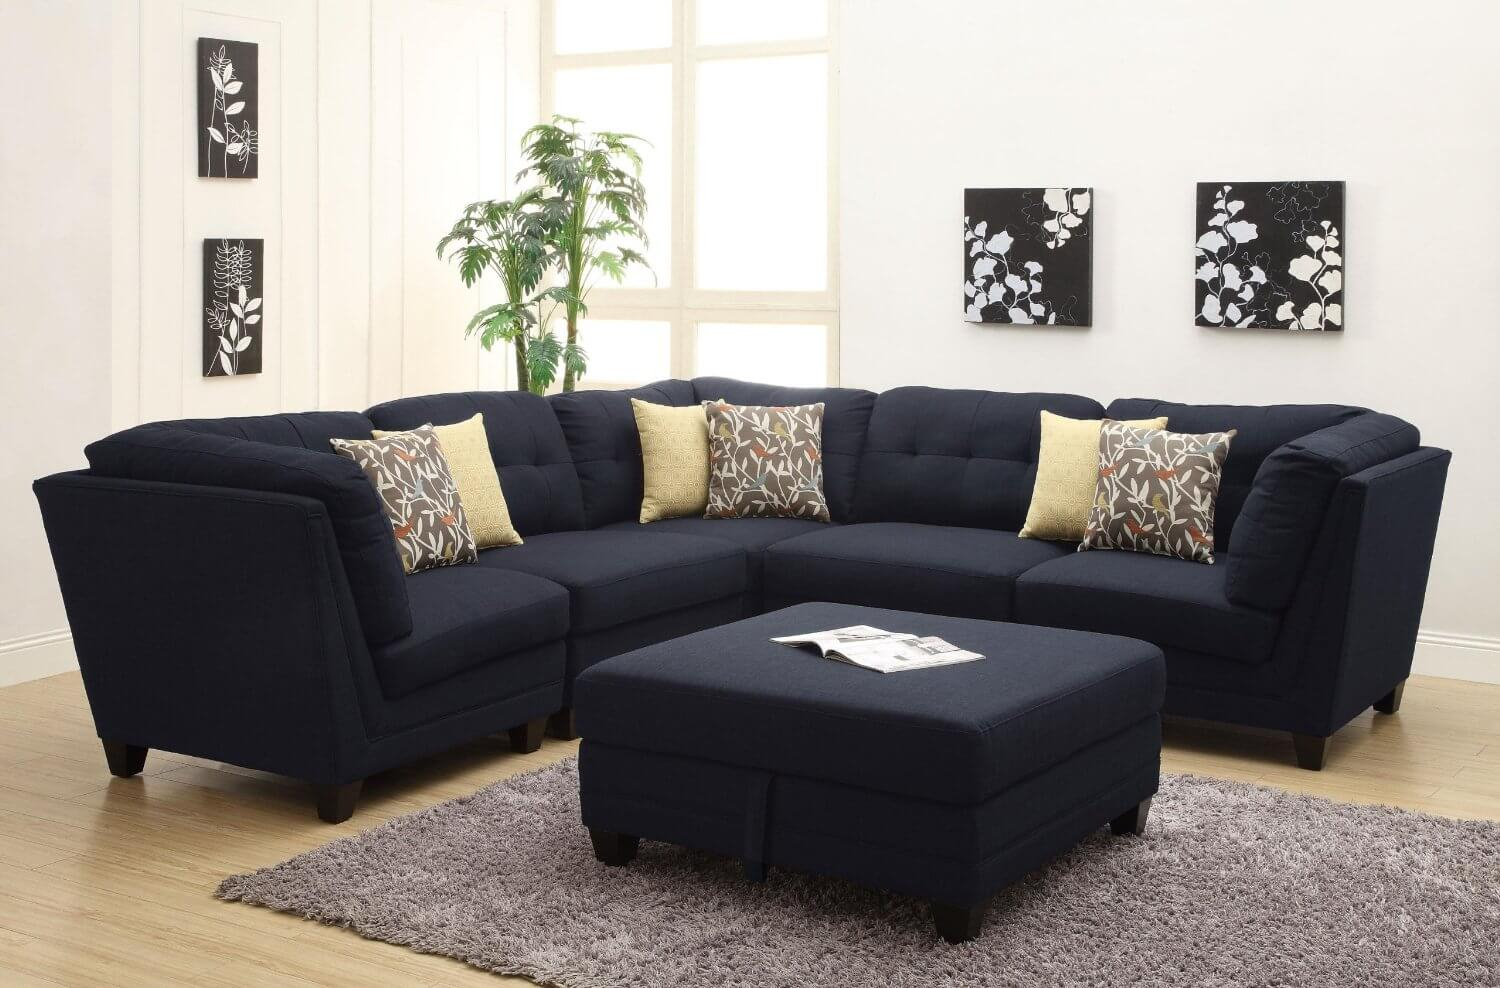 37 Beautiful Sectional Sofas Under $1,000 Within Dream Navy 3 Piece Modular Sofas (View 4 of 15)